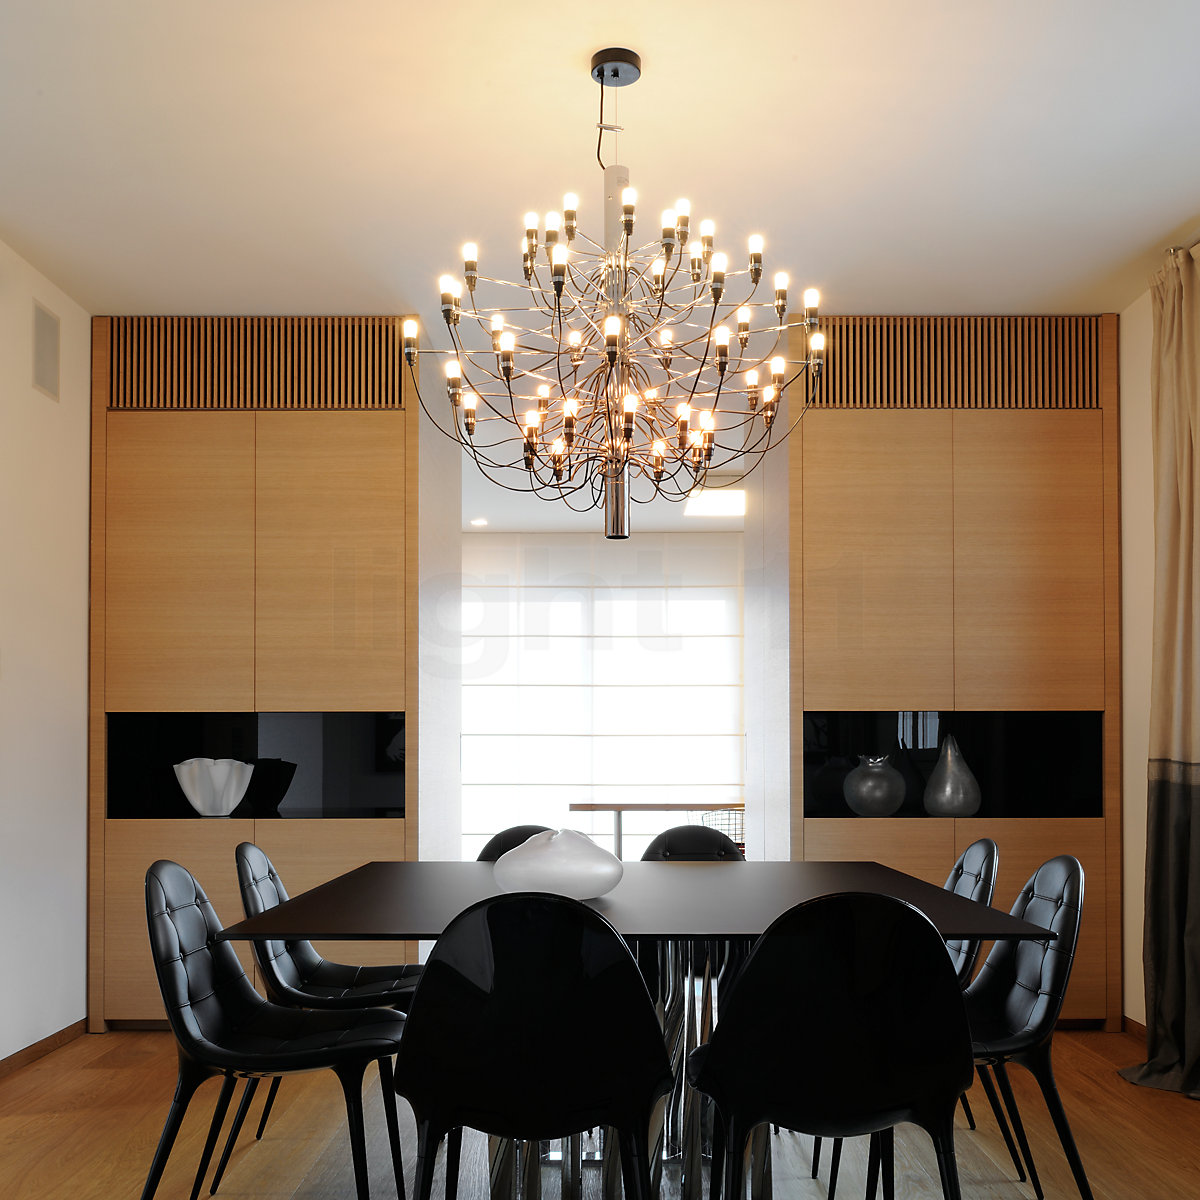 2097 by Flos: lights & lamps at light11.eu